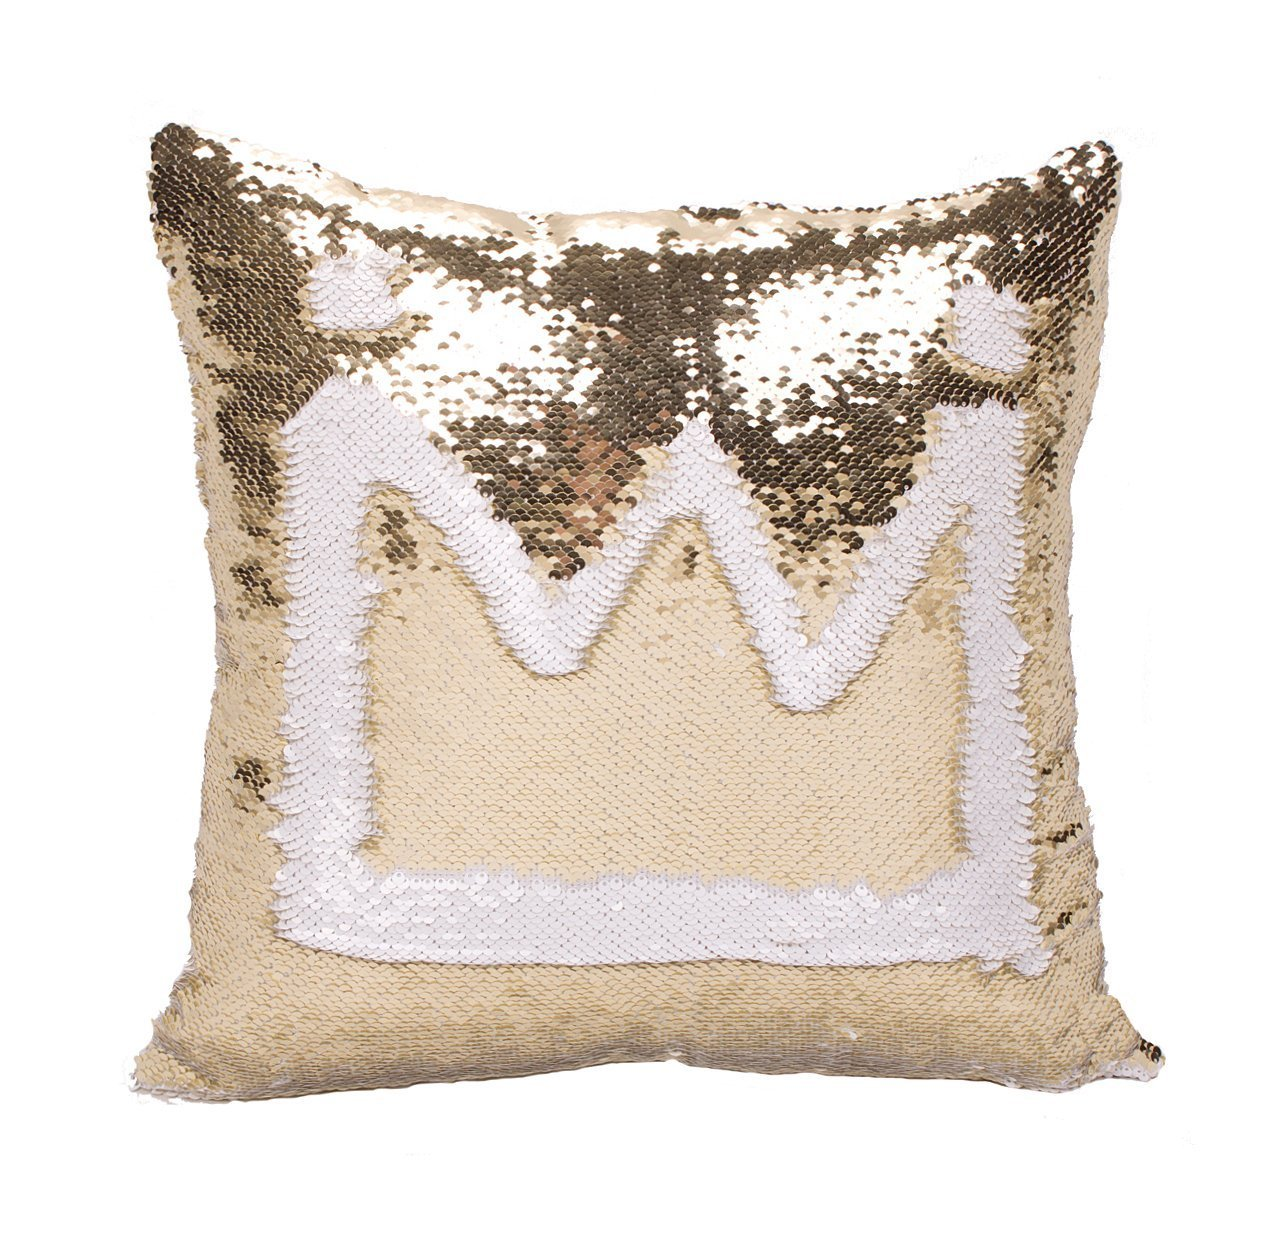 Idea Up Reversible Sequins Mermaid Pillow Cases 4040cm with magic mermaid sequin (black and silver) DianYu DYPOLLOWCOVER1600113